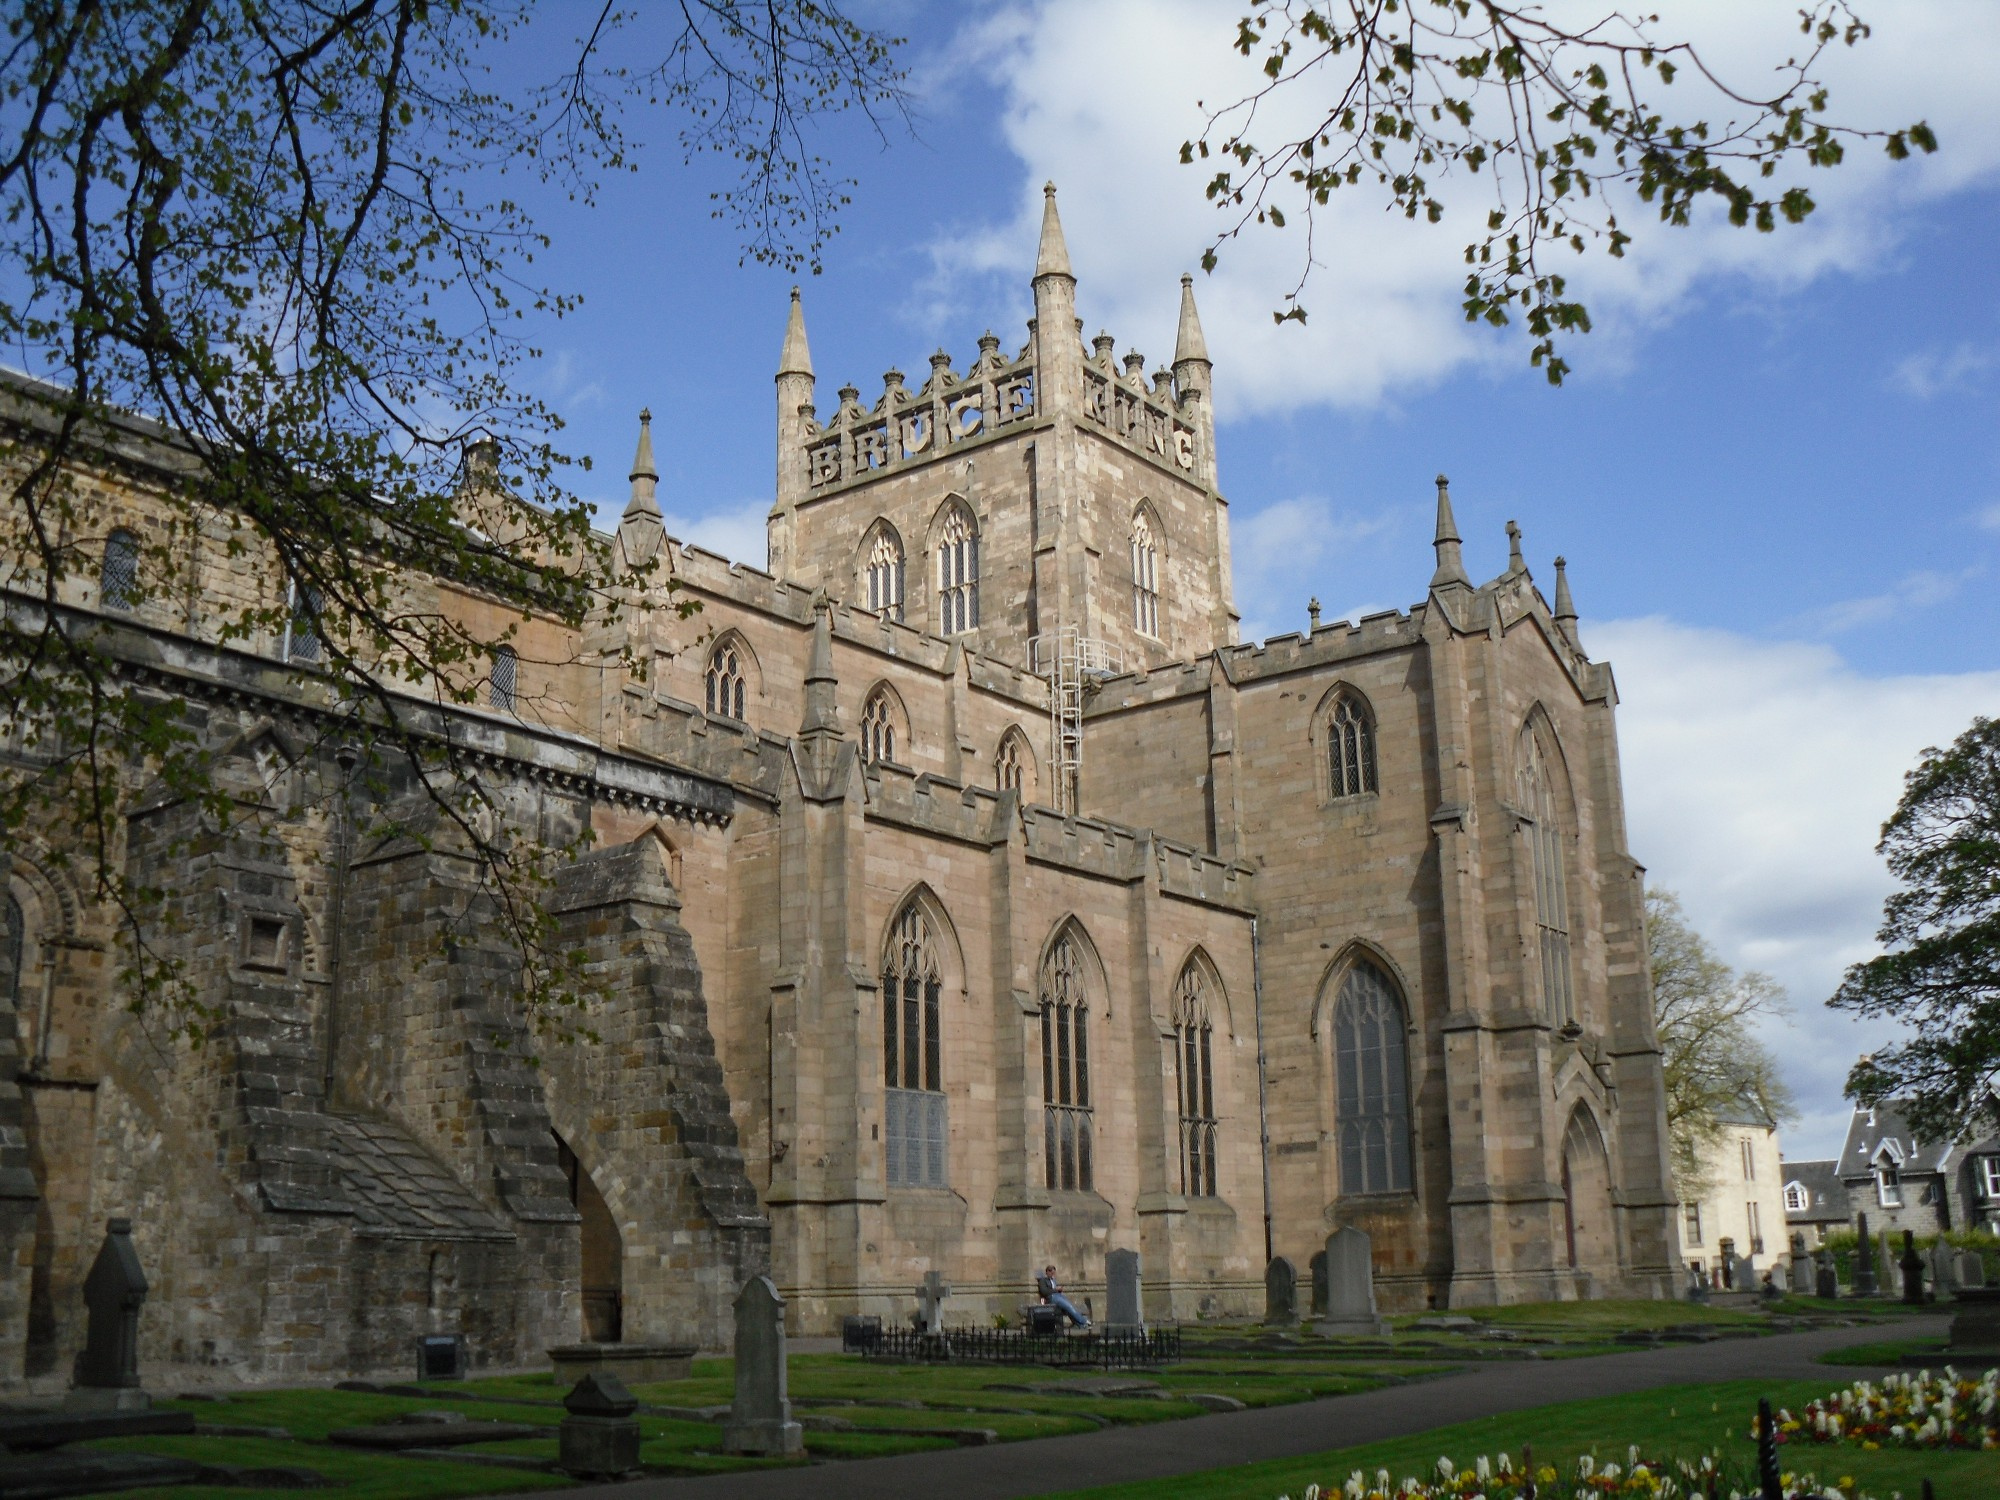 Dunfermline Abbey & Palace Dunfermline, Dunfermline Abbey | Pining for the West